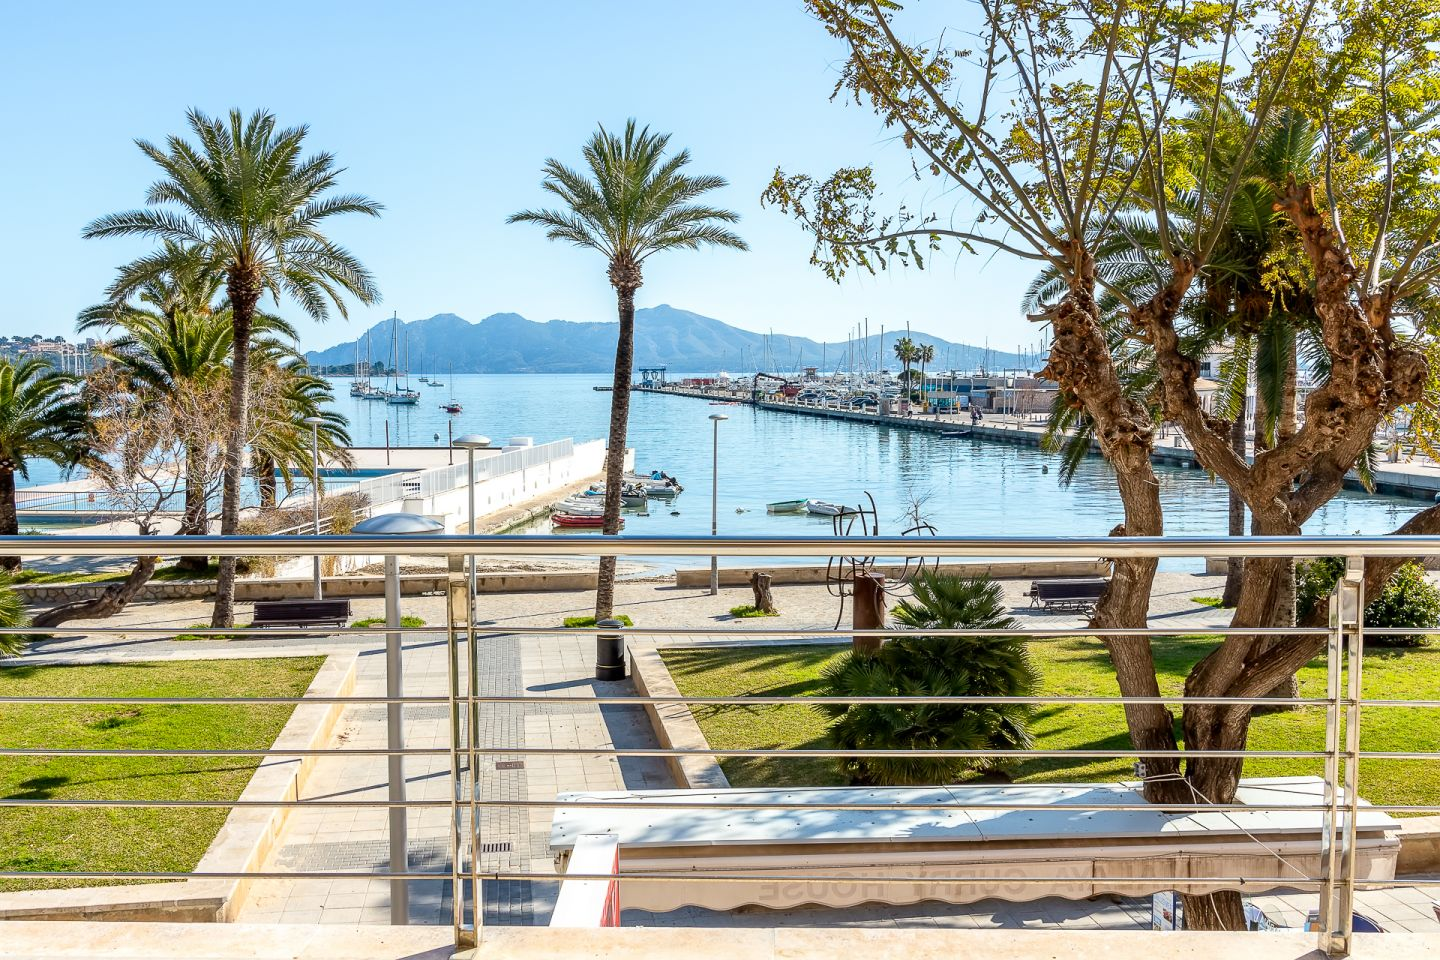 5 Bed Apartment for sale in Puerto Pollensa 9